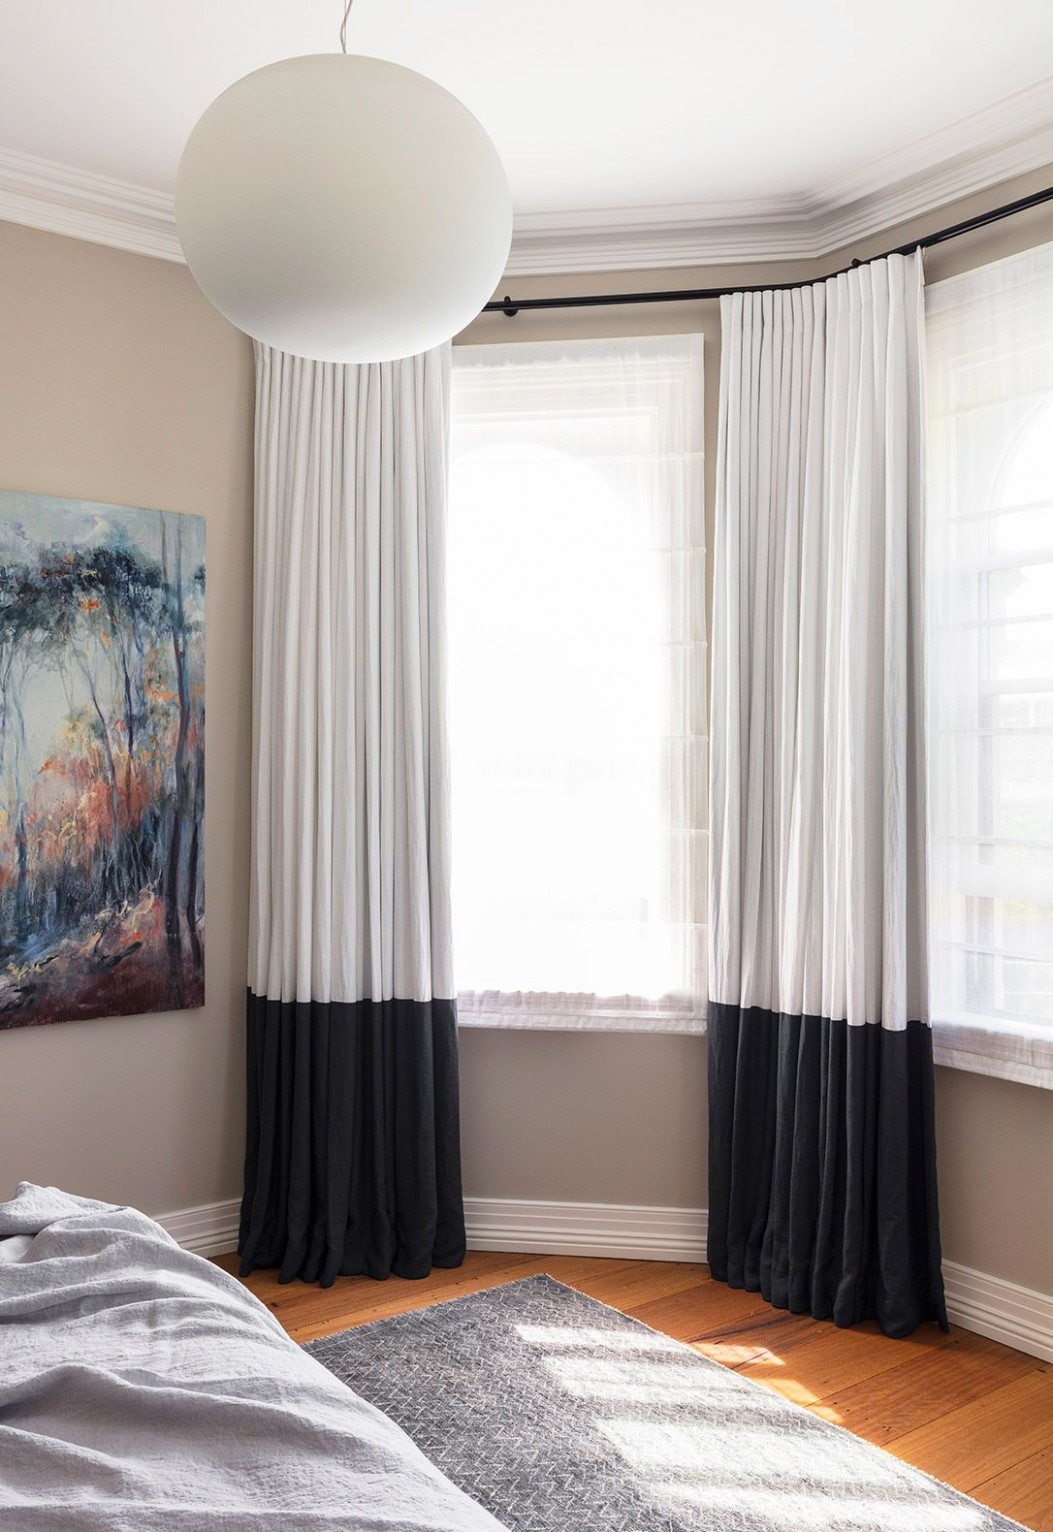 11 Best Window Treatment Ideas - Window Coverings, Curtains, & Blinds - Window Valance Ideas For Bedroom